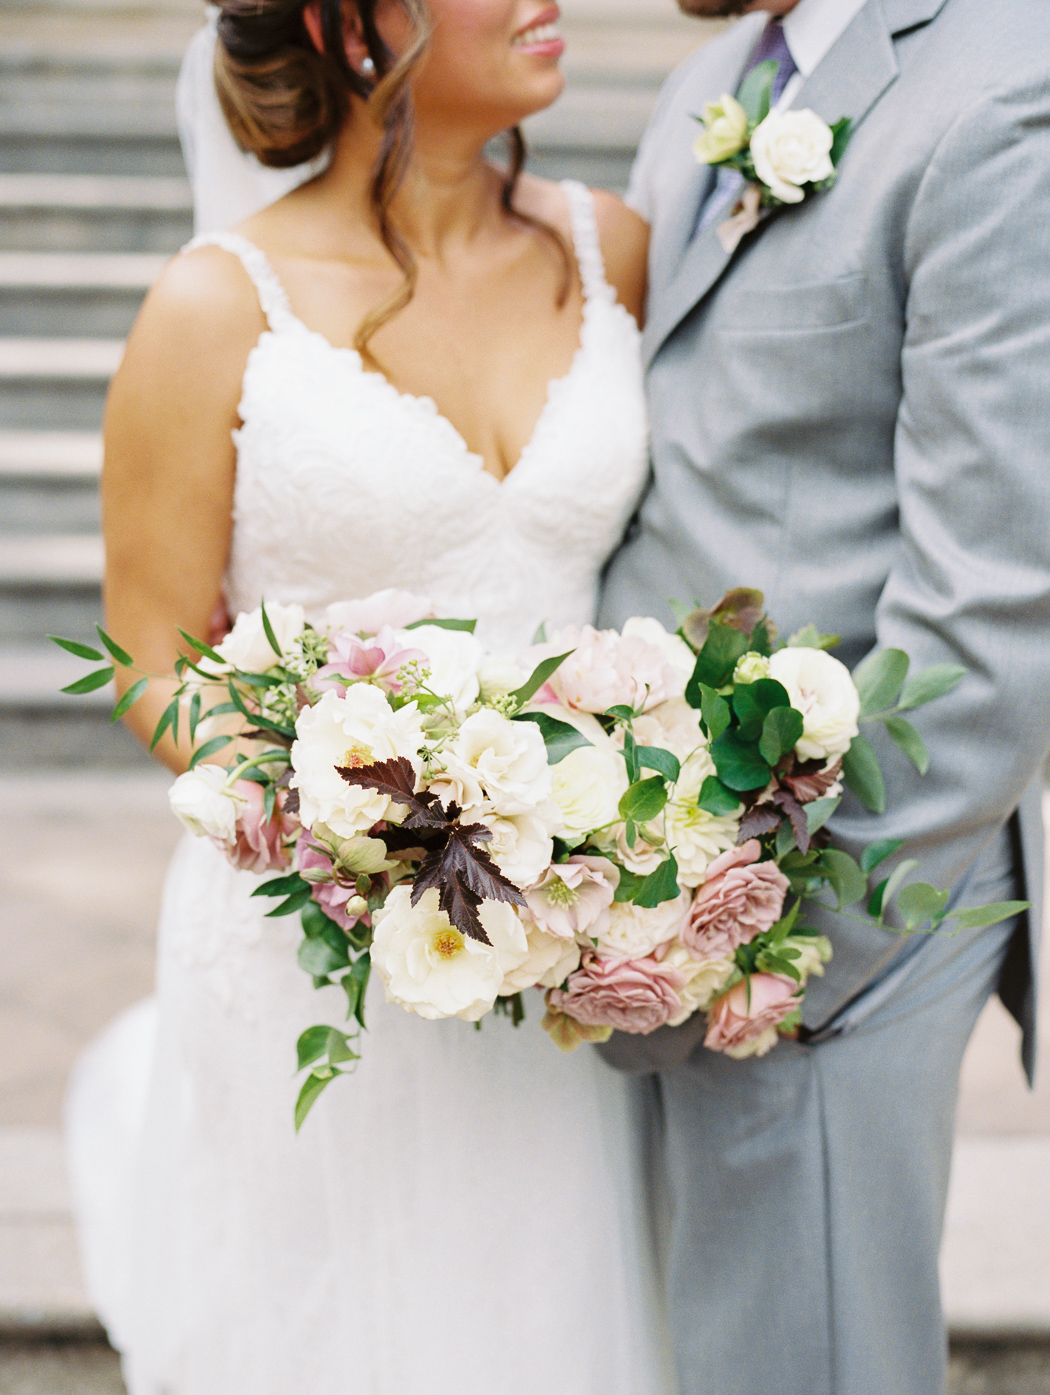 Amy-lauren-floral-design-wedding-bouquet